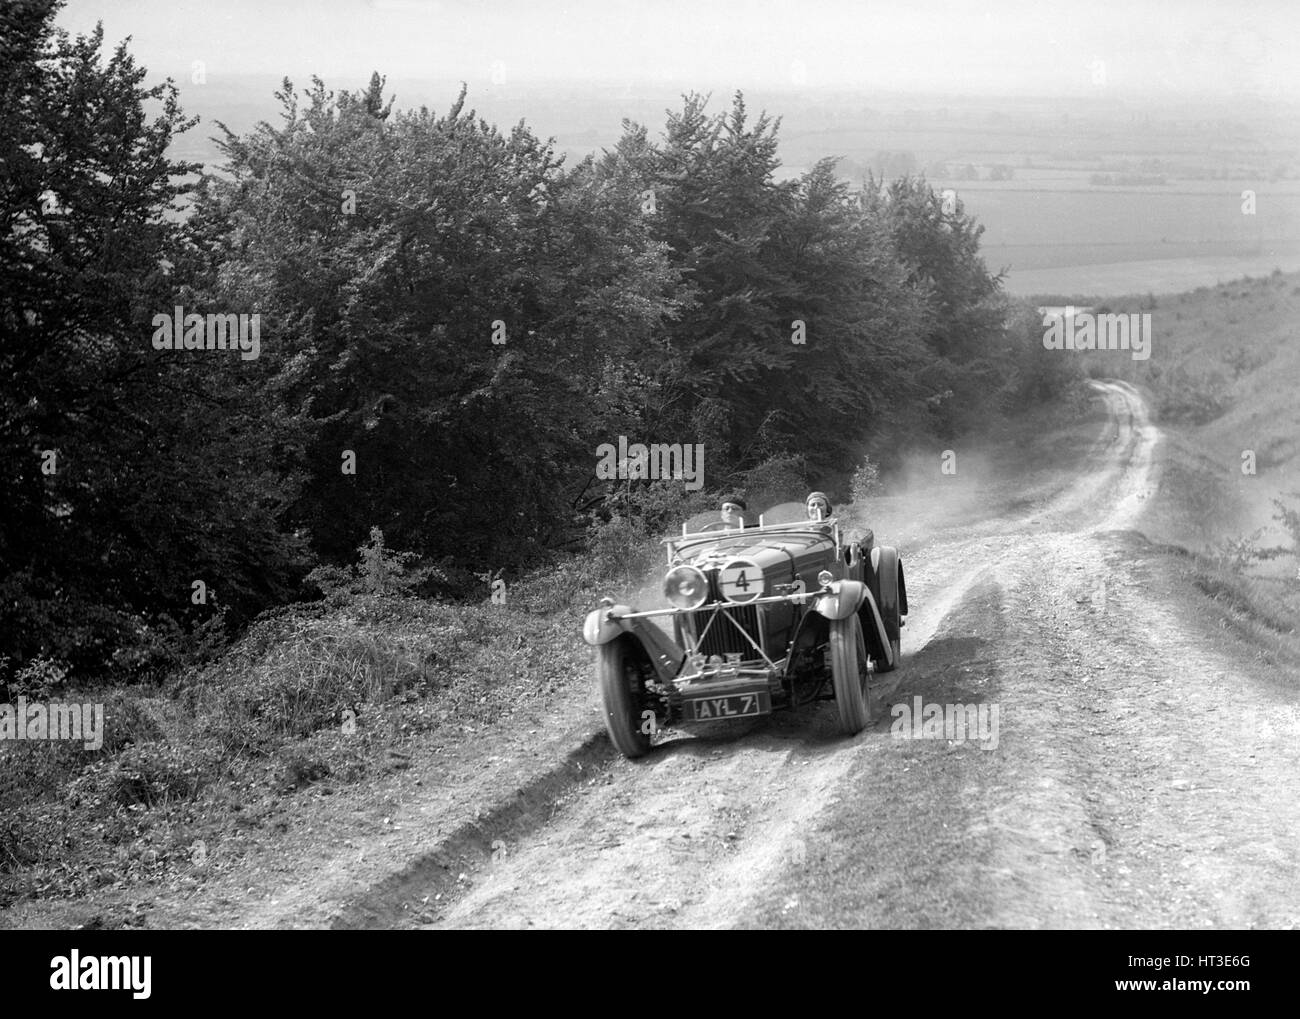 1934 Talbot 105 2970 cc competing in a Talbot CC trial. Artist: Bill Brunell. - Stock Image